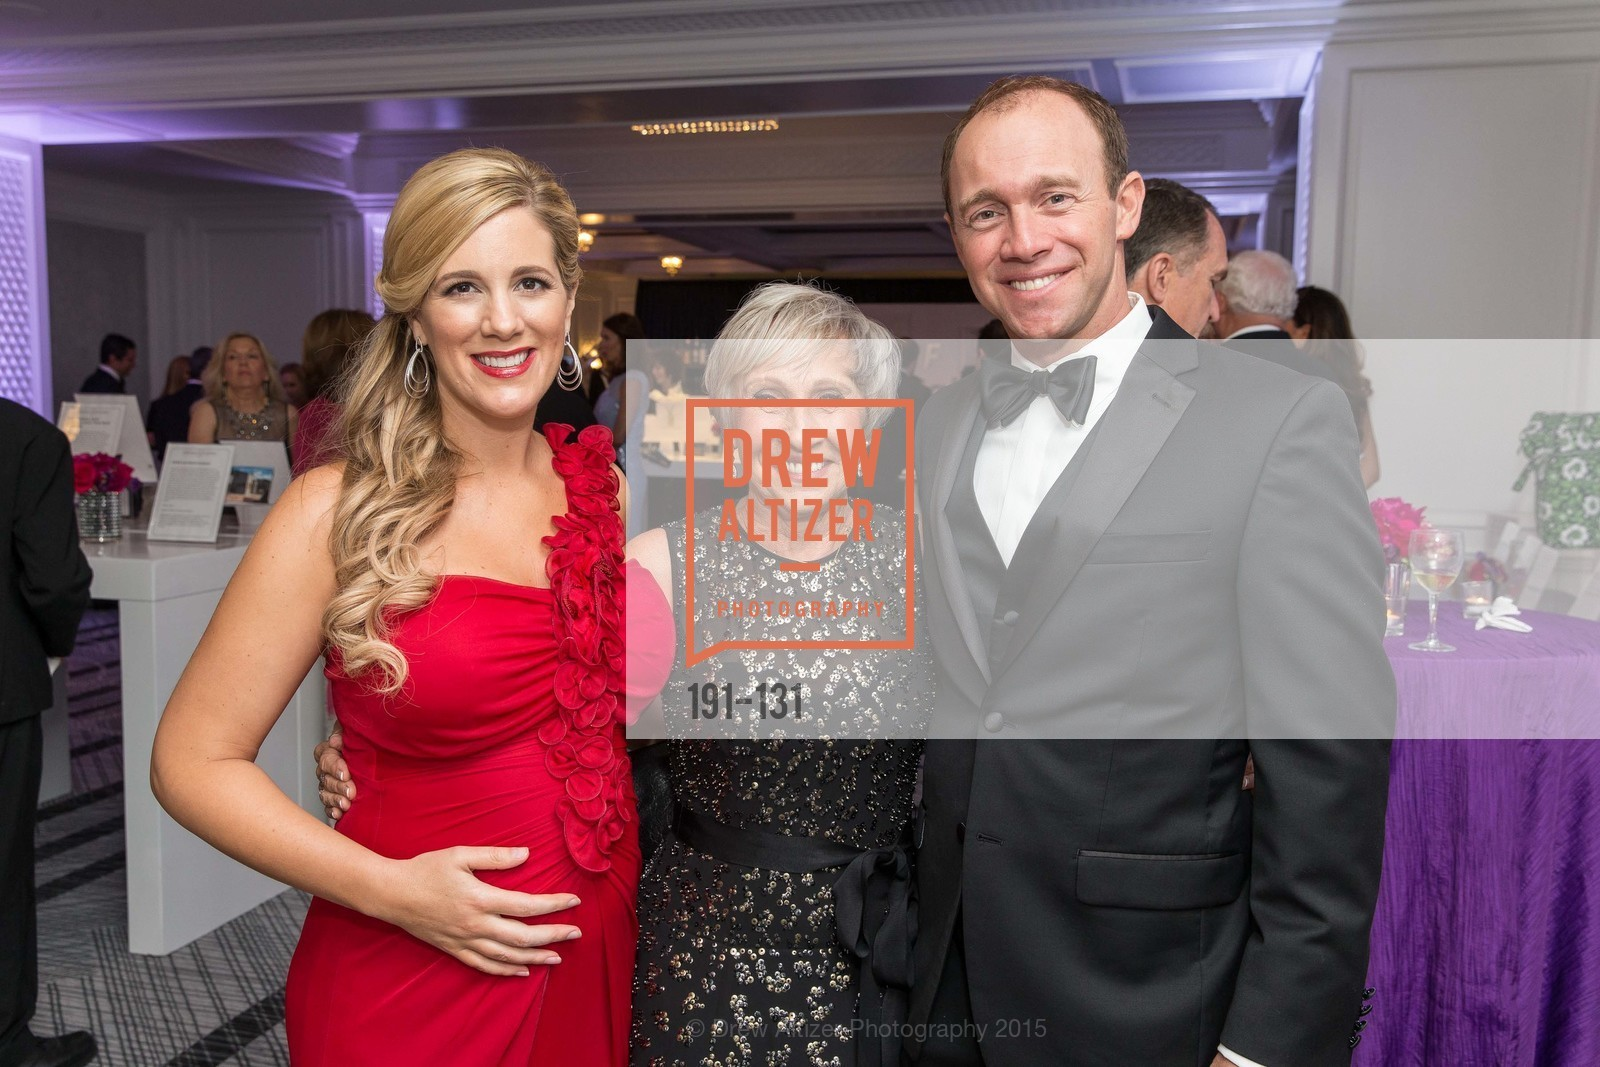 Lauren Sagan, Pam Sagan, Trevor Sagan, JUVENILE DIABETES RESEARCH FOUNDATION  Hope Gala, The Ritz-Carlton, May 29th, 2015,Drew Altizer, Drew Altizer Photography, full-service agency, private events, San Francisco photographer, photographer california